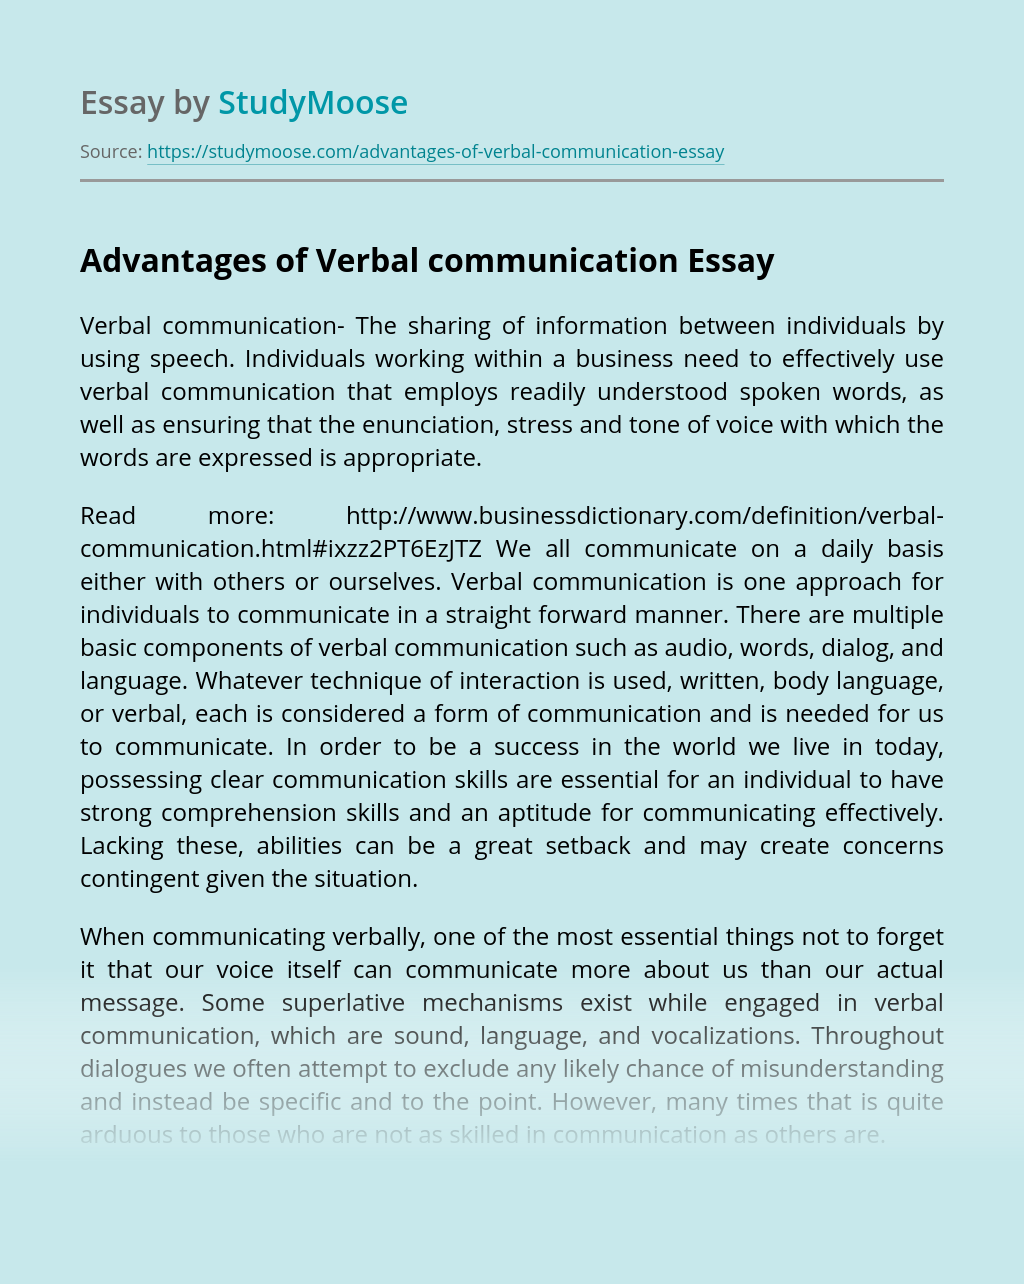 Advantages of Verbal communication